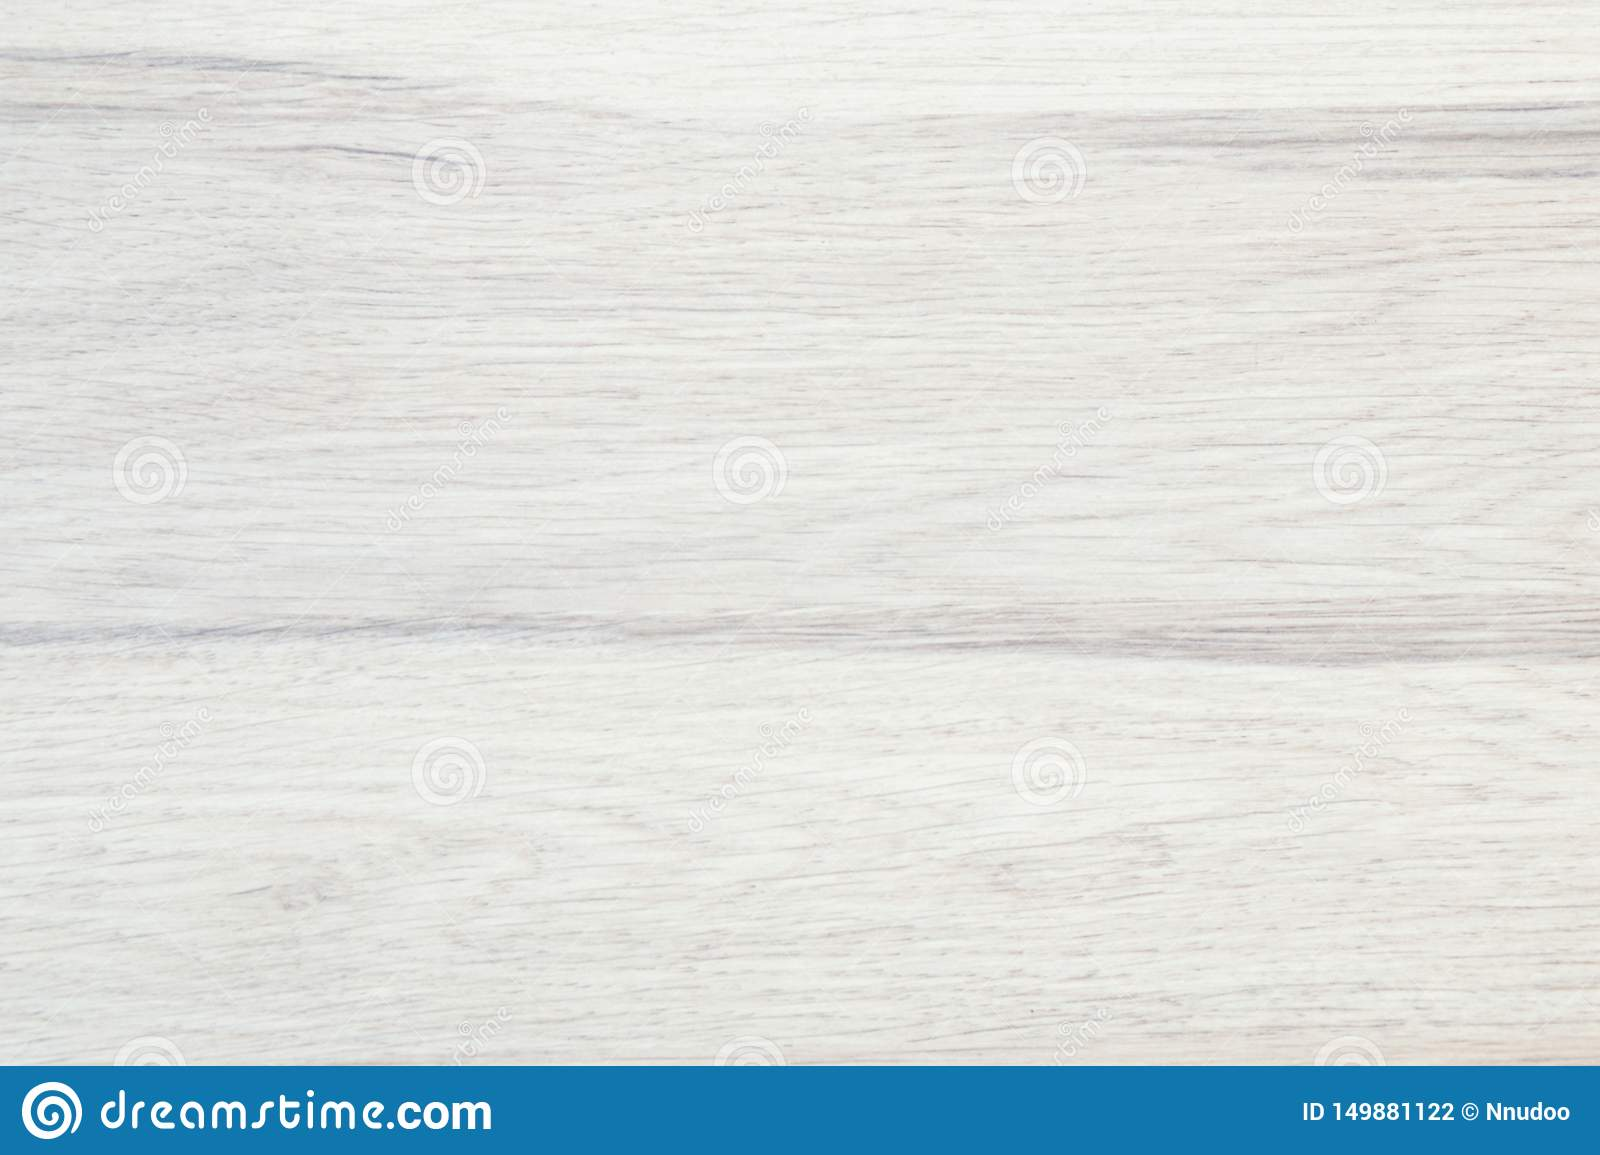 White light wood texture with natural pattern background for design and decoration